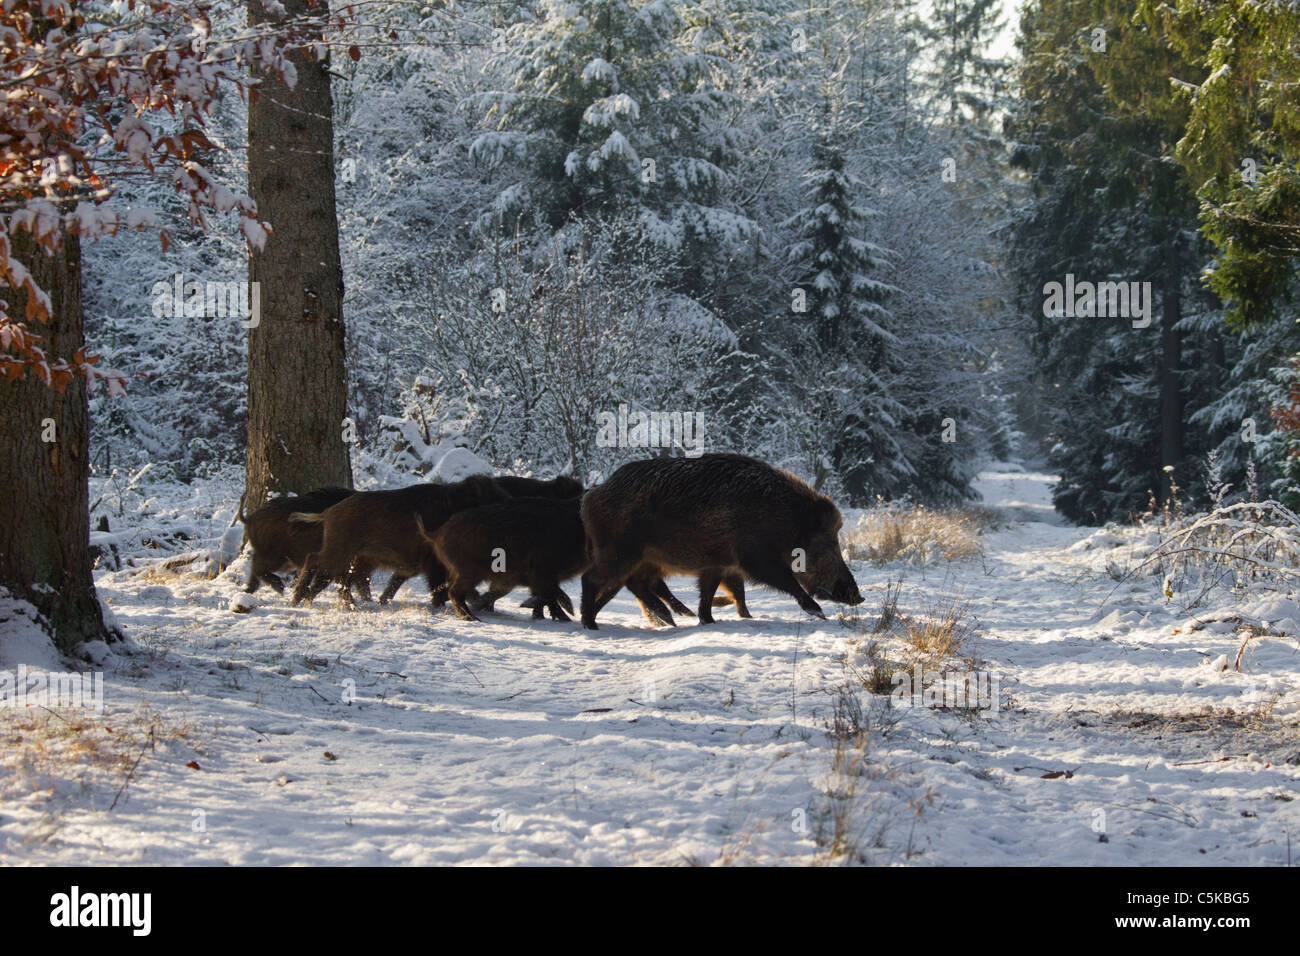 Wild boar (Sus scrofa) sounder in fire lane in pine forest in the snow in winter, Germany - Stock Image